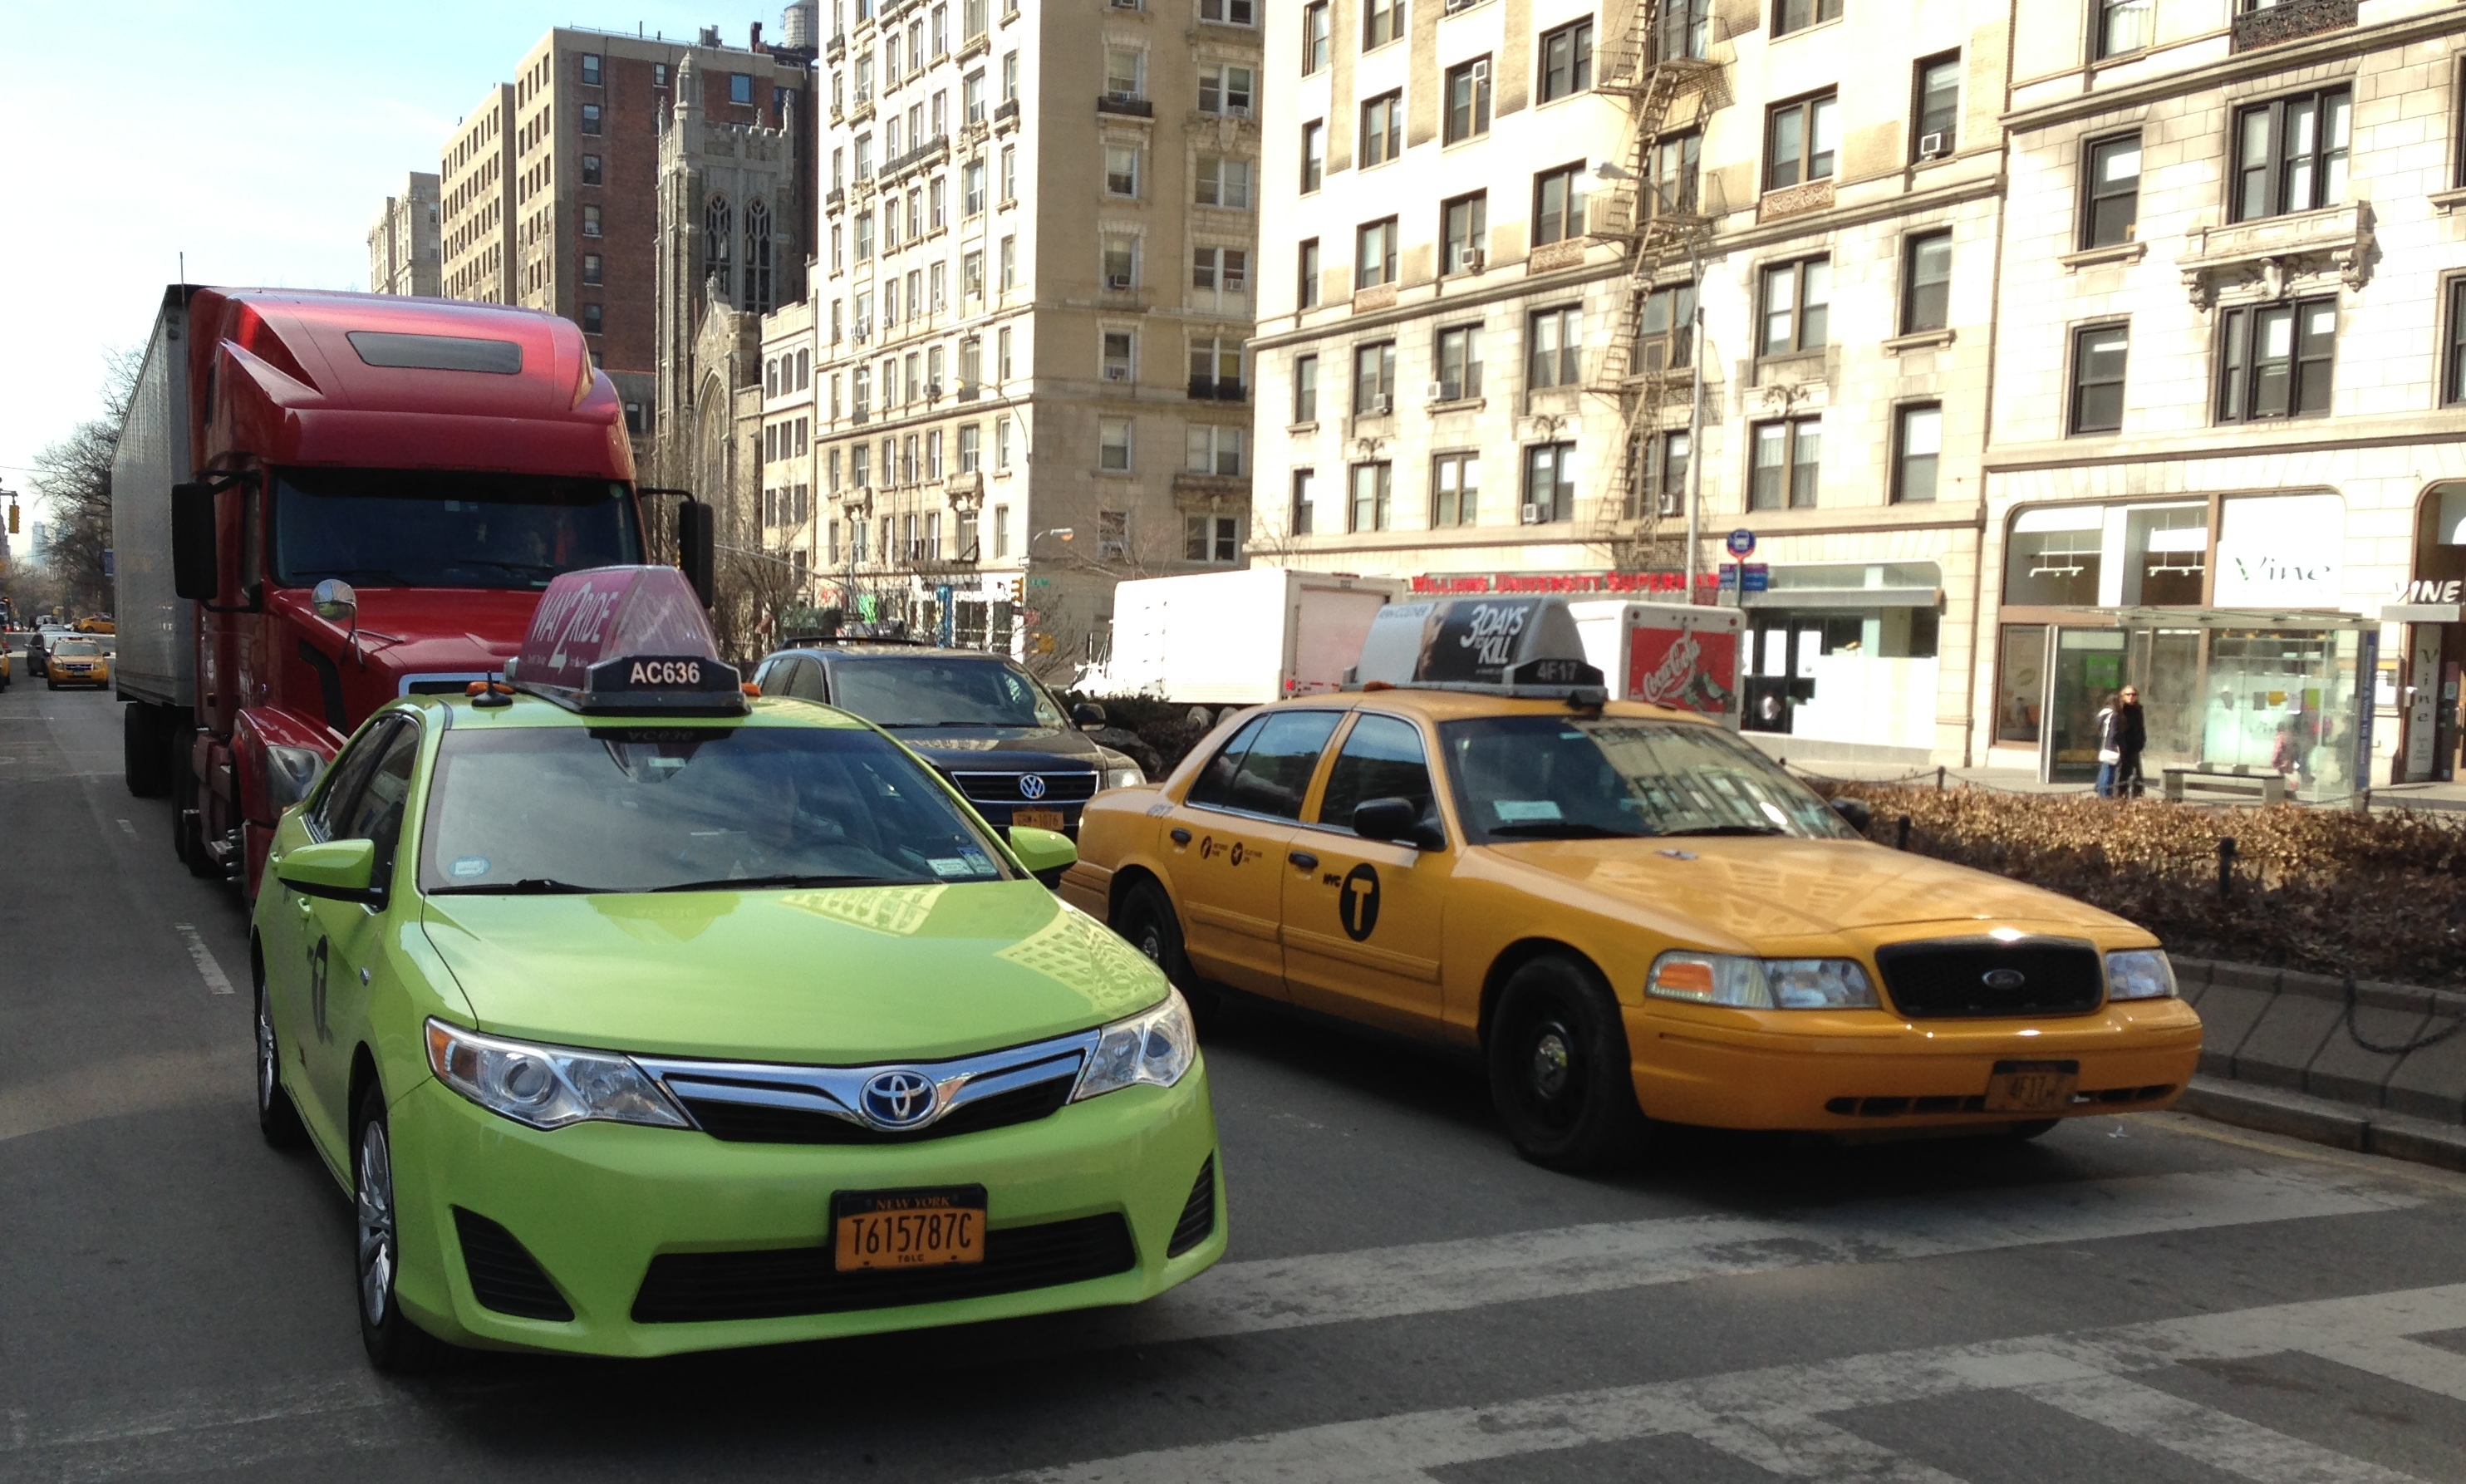 yellow cabs and green bro taxis JFK to New York City